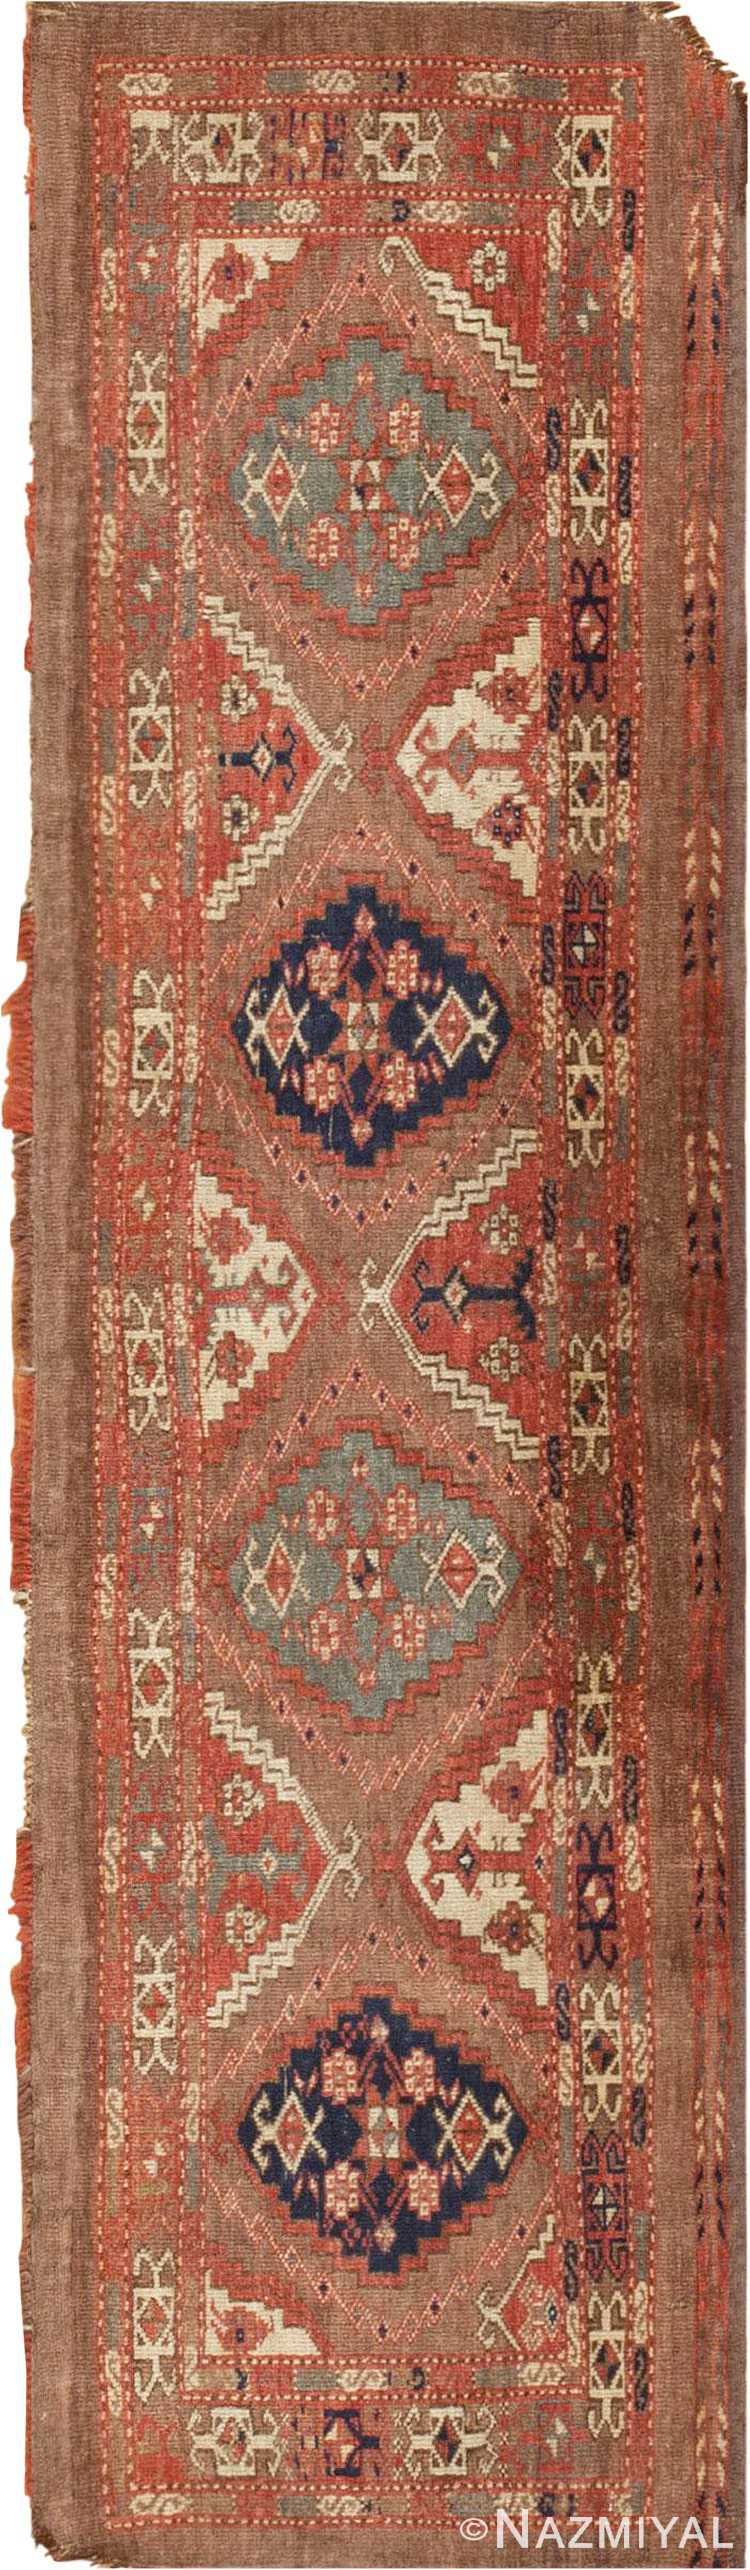 Antique Central Asian Yomut Rug #46112 by Nazmiyal Antique Rugs